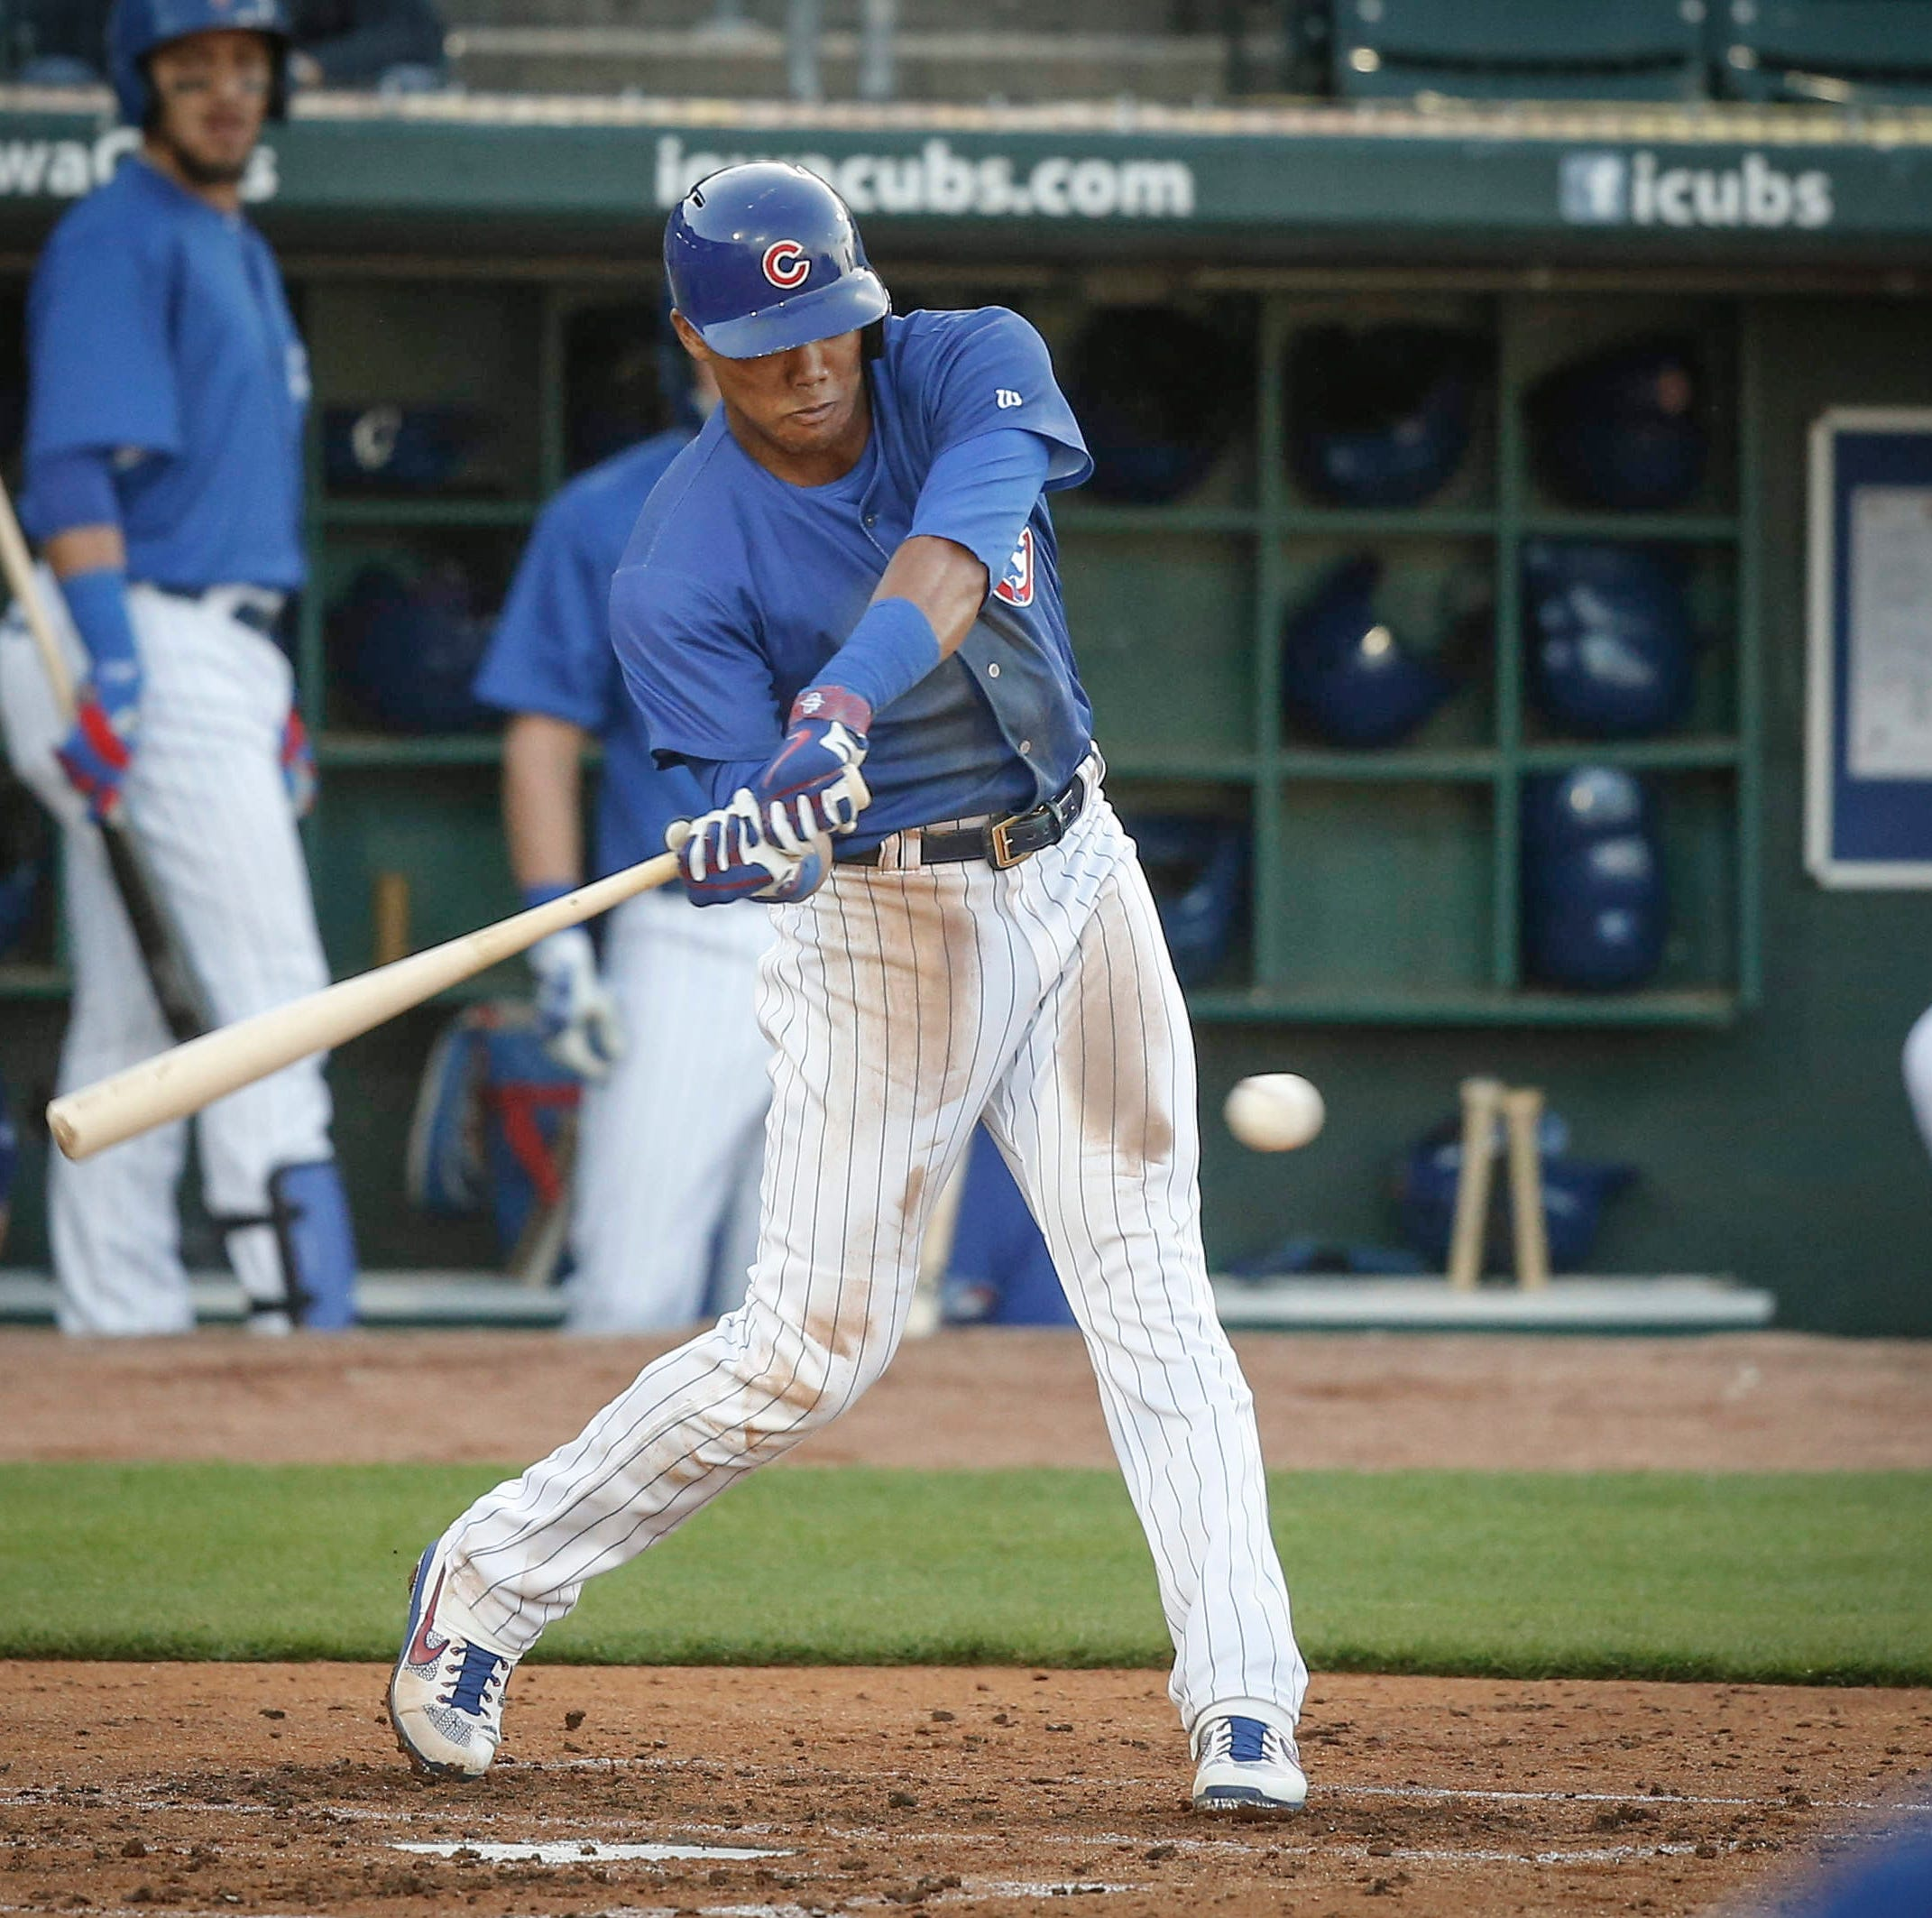 Chicago Cubs to option Addison Russell to Triple-A